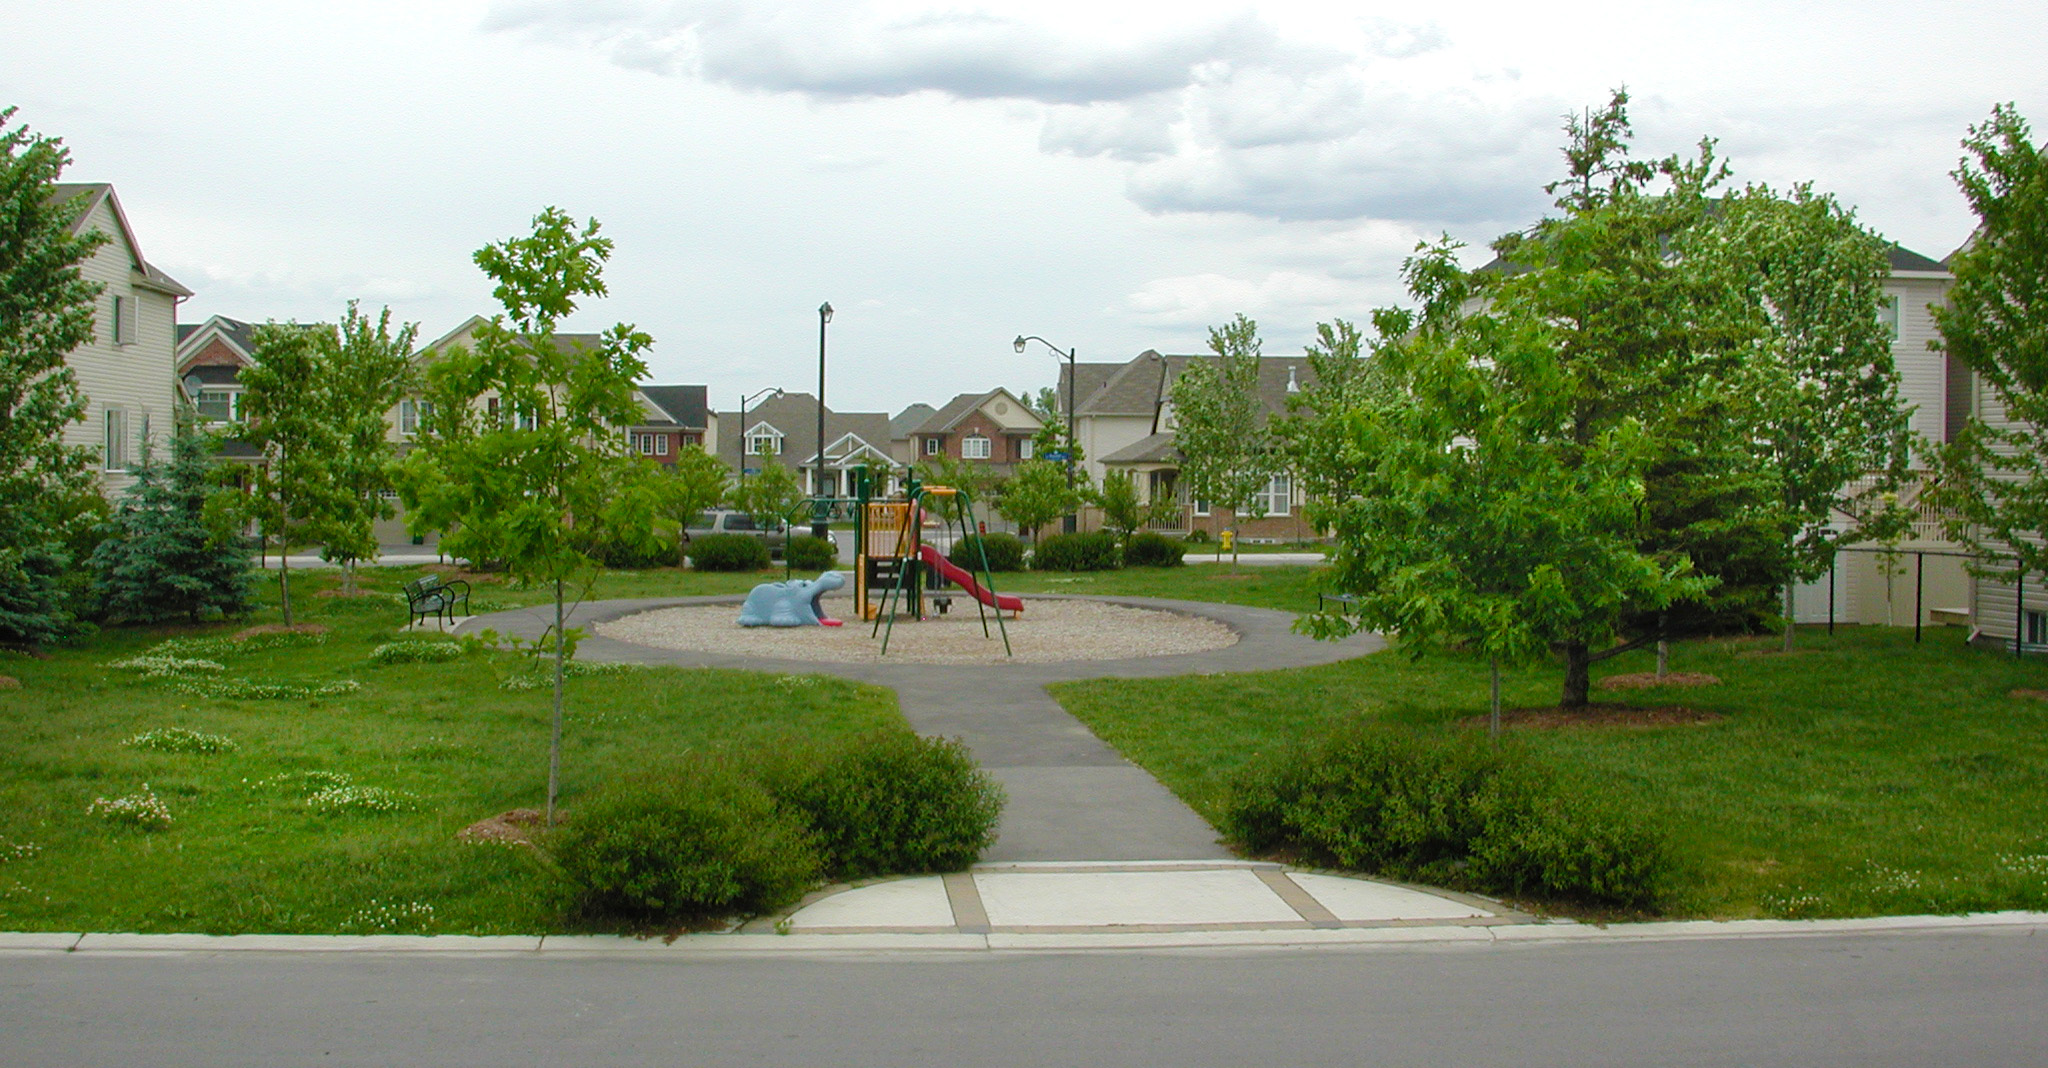 Figure 1: A small park serves also as a connector between two streets